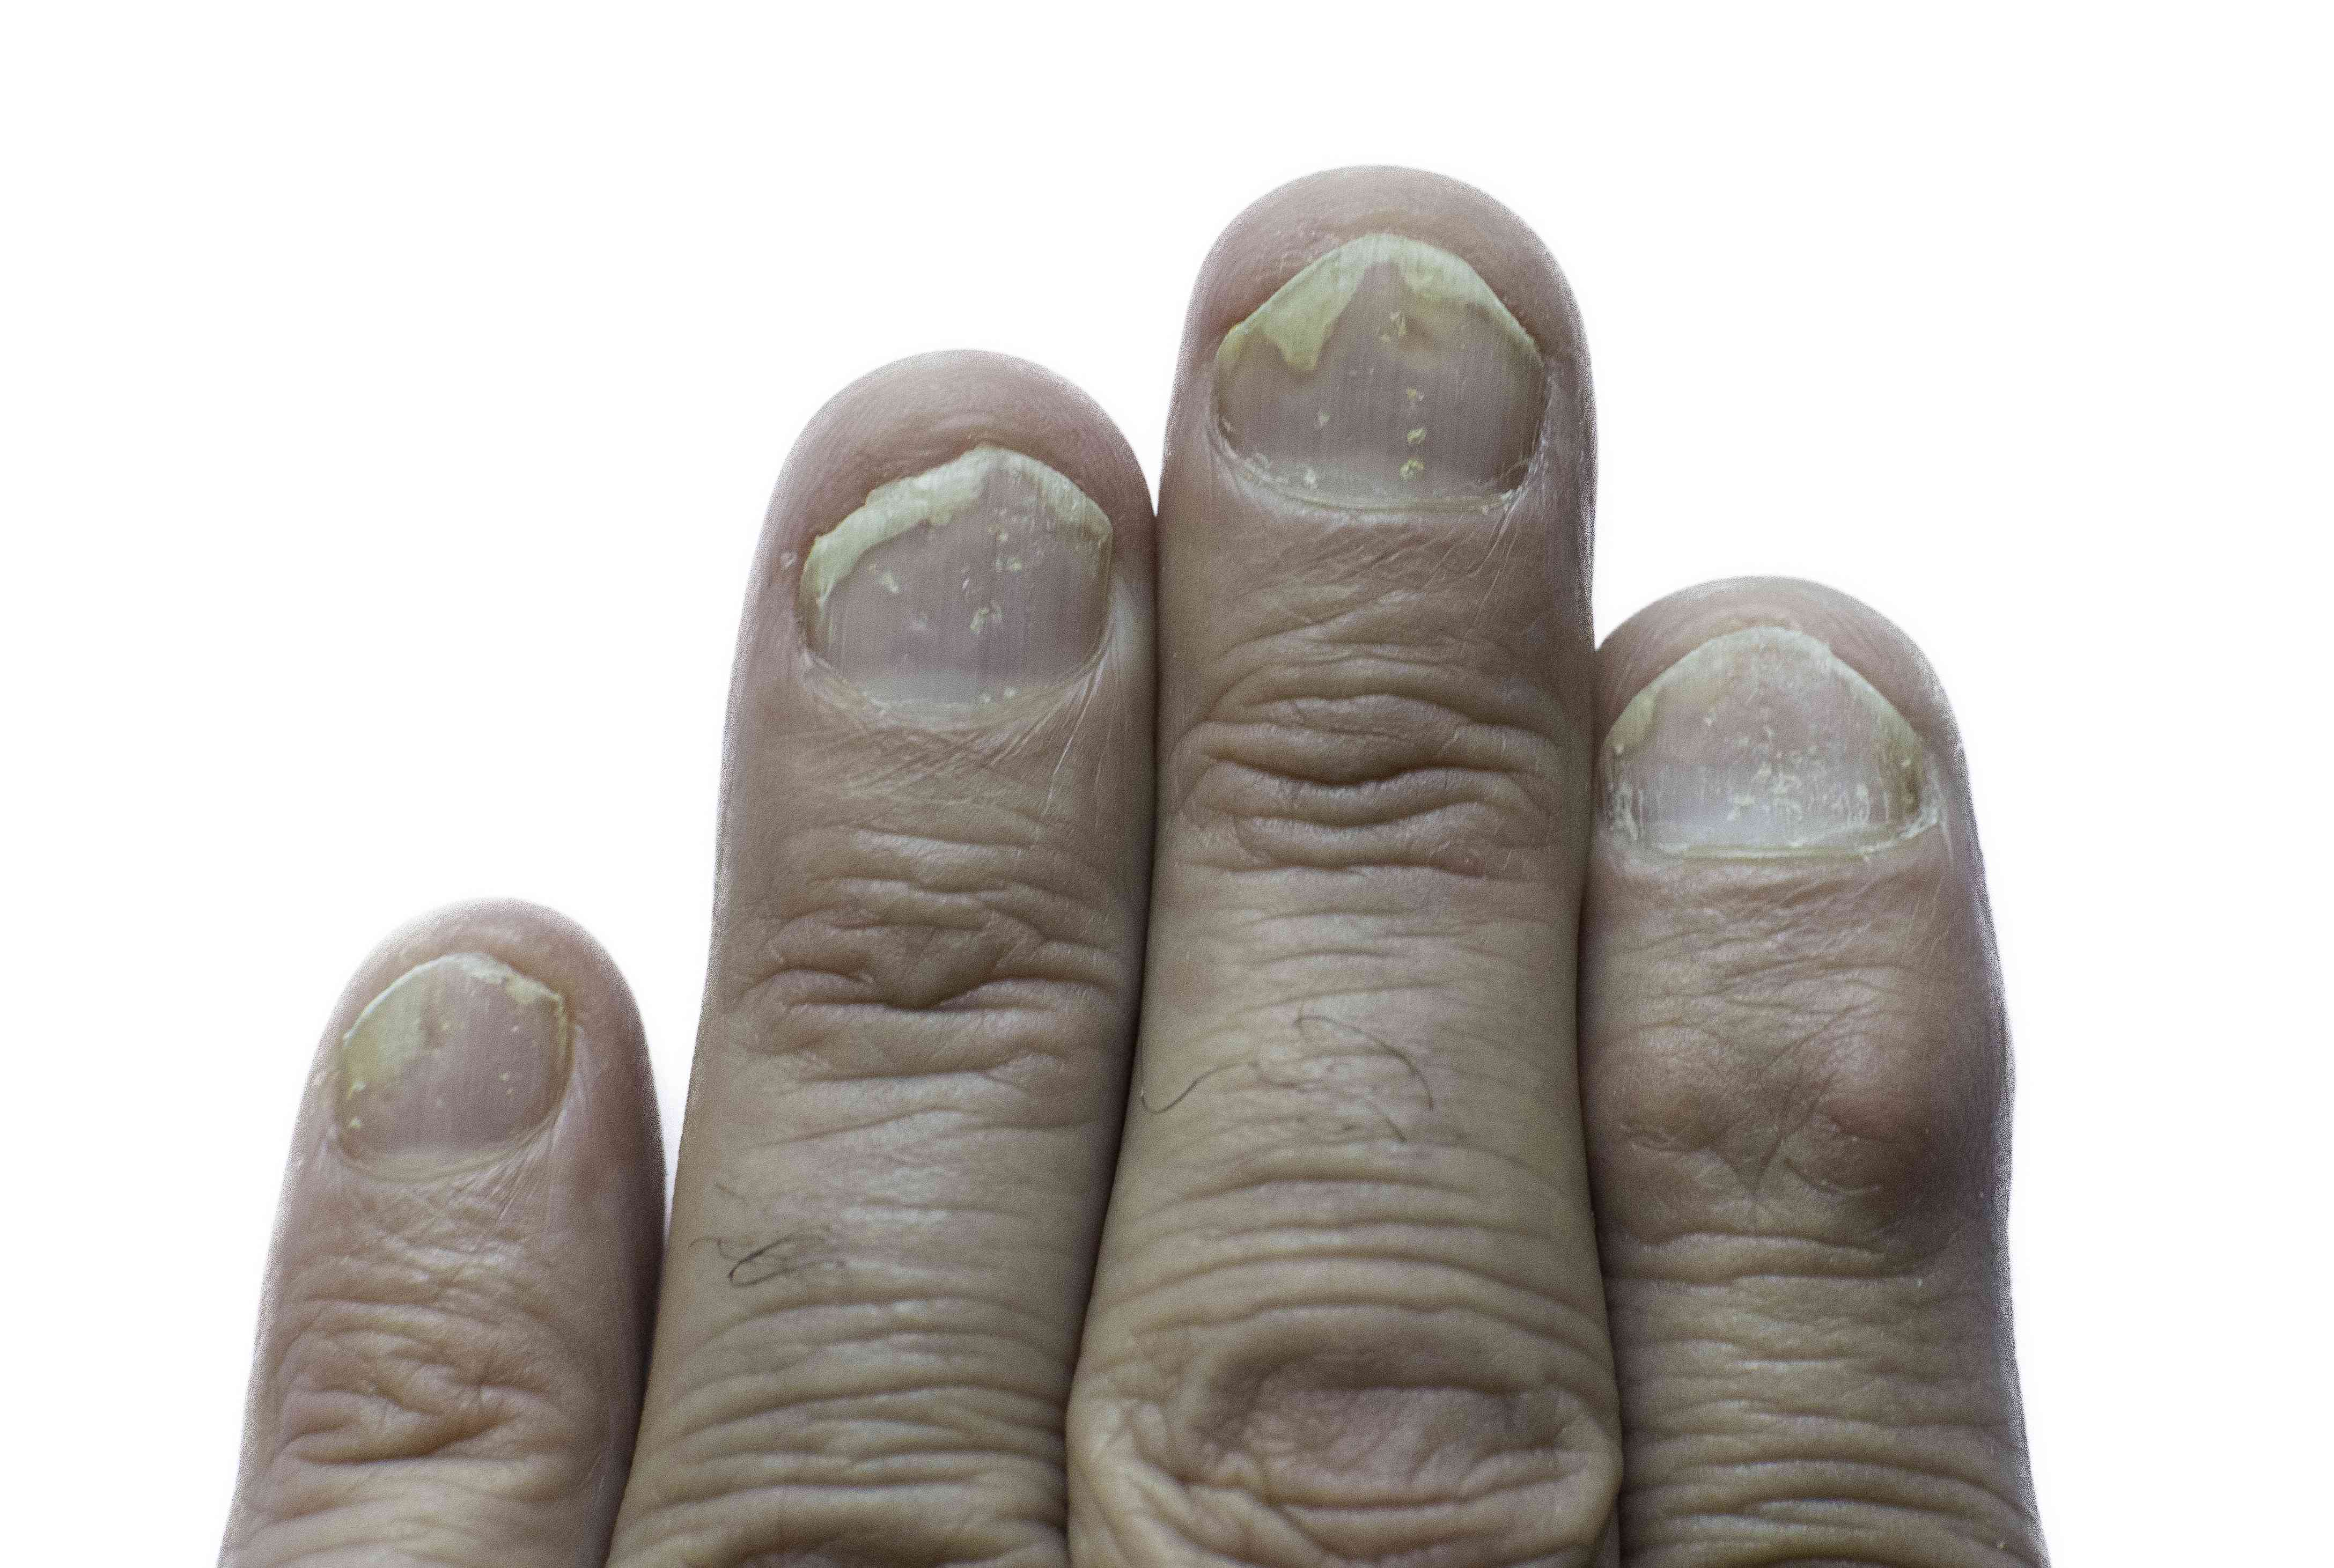 Psoriasis of the nails